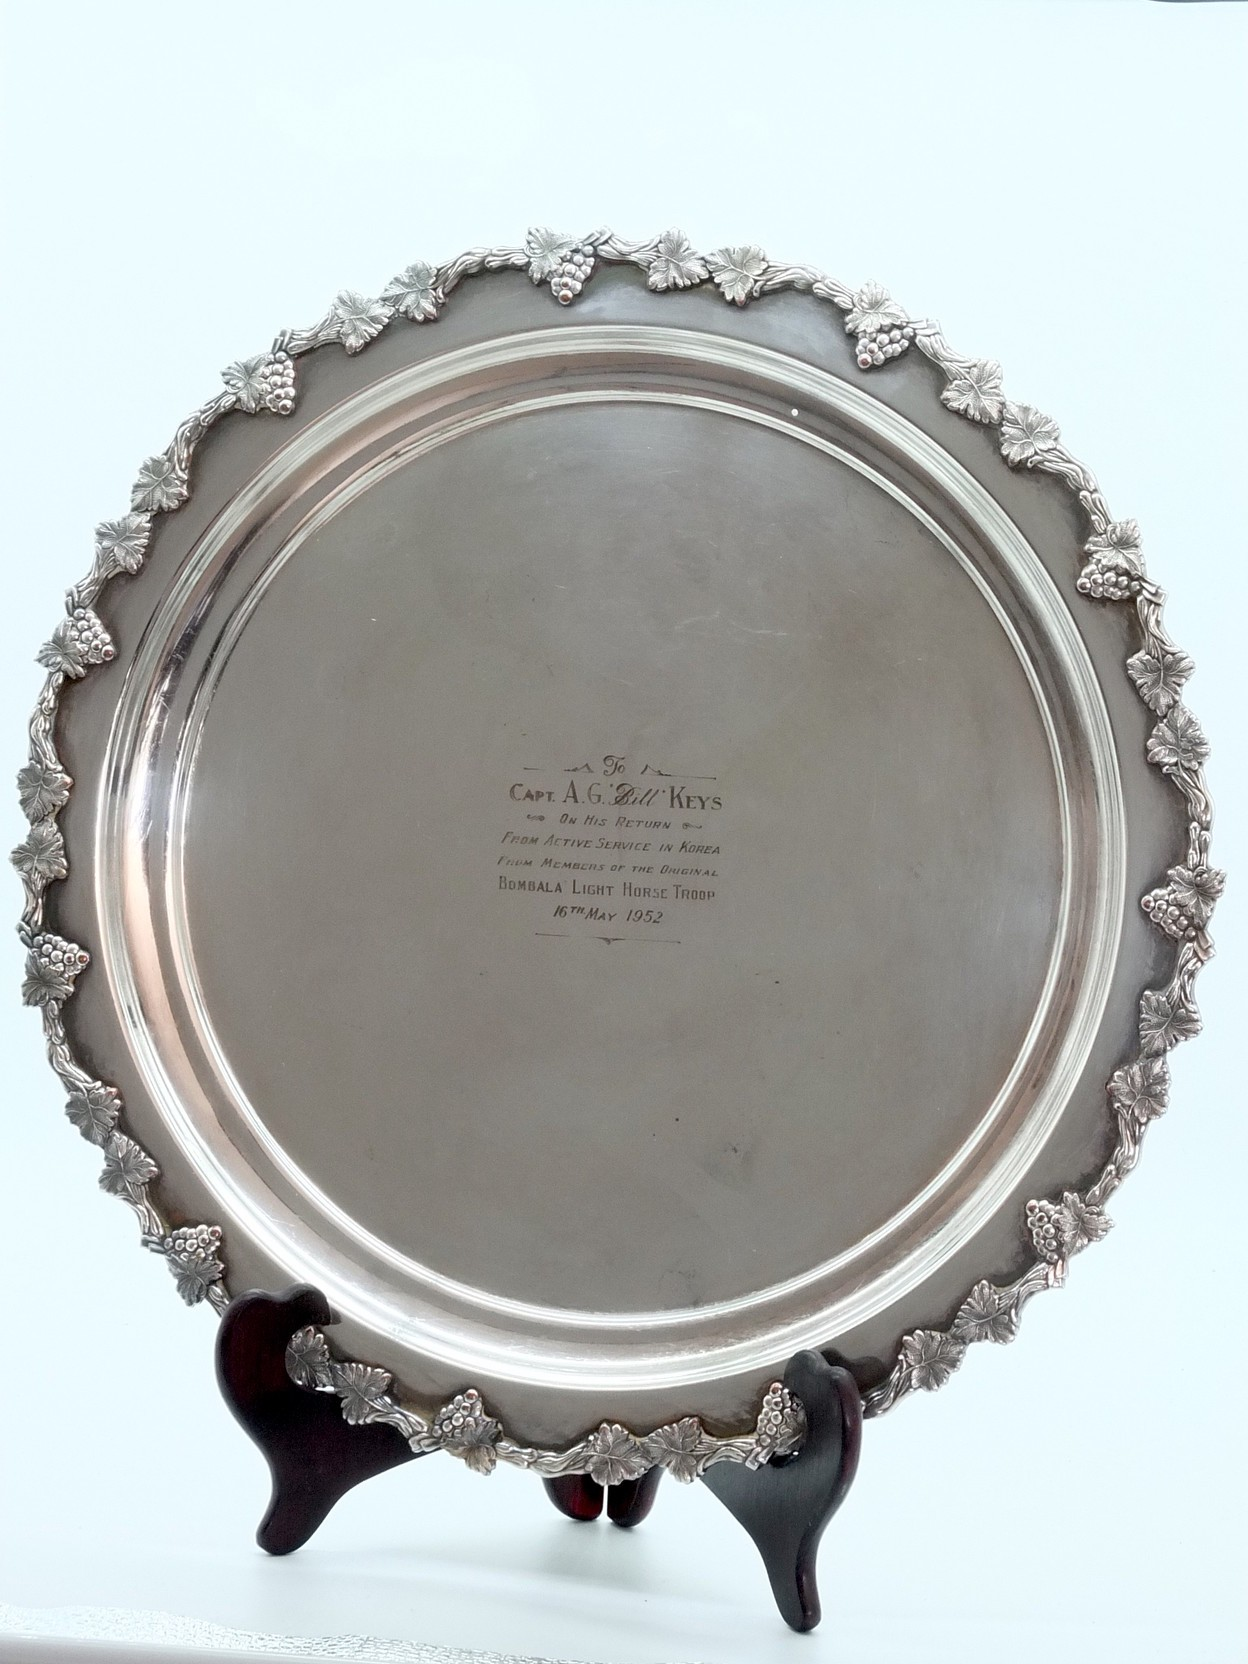 'Two Silver Plate Butlers Trays Presented to Captain A.G Bill Keys 1952 and A.G.W Keys O.B.E, M.C 1978'